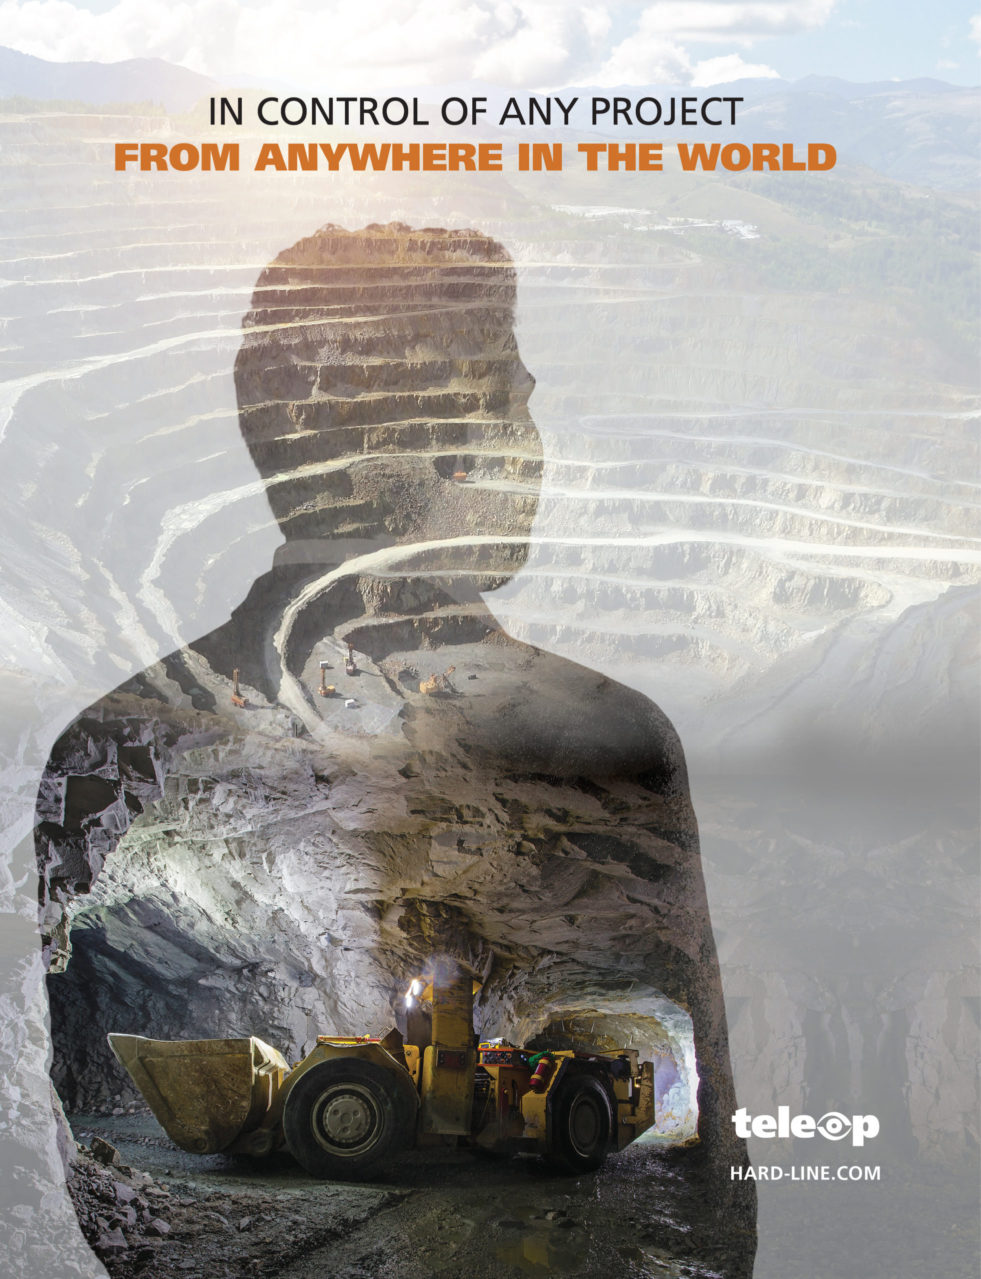 """Image of Walter Siggelkow facing away from the camera crossfaded with images of both an open pit and underground mine. At the top of the Image is written """"In Control of Any Project from Anywhere in the World"""""""